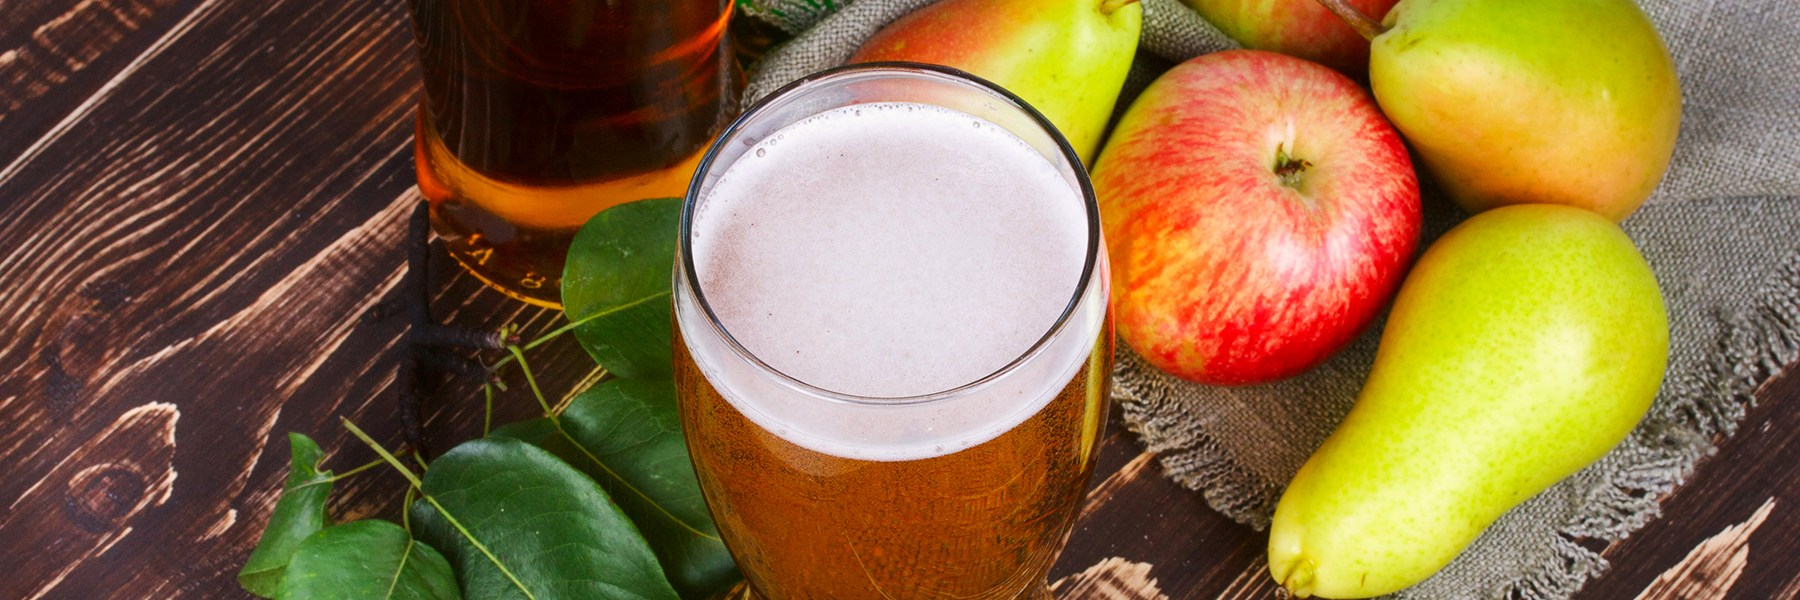 Cider and fruits